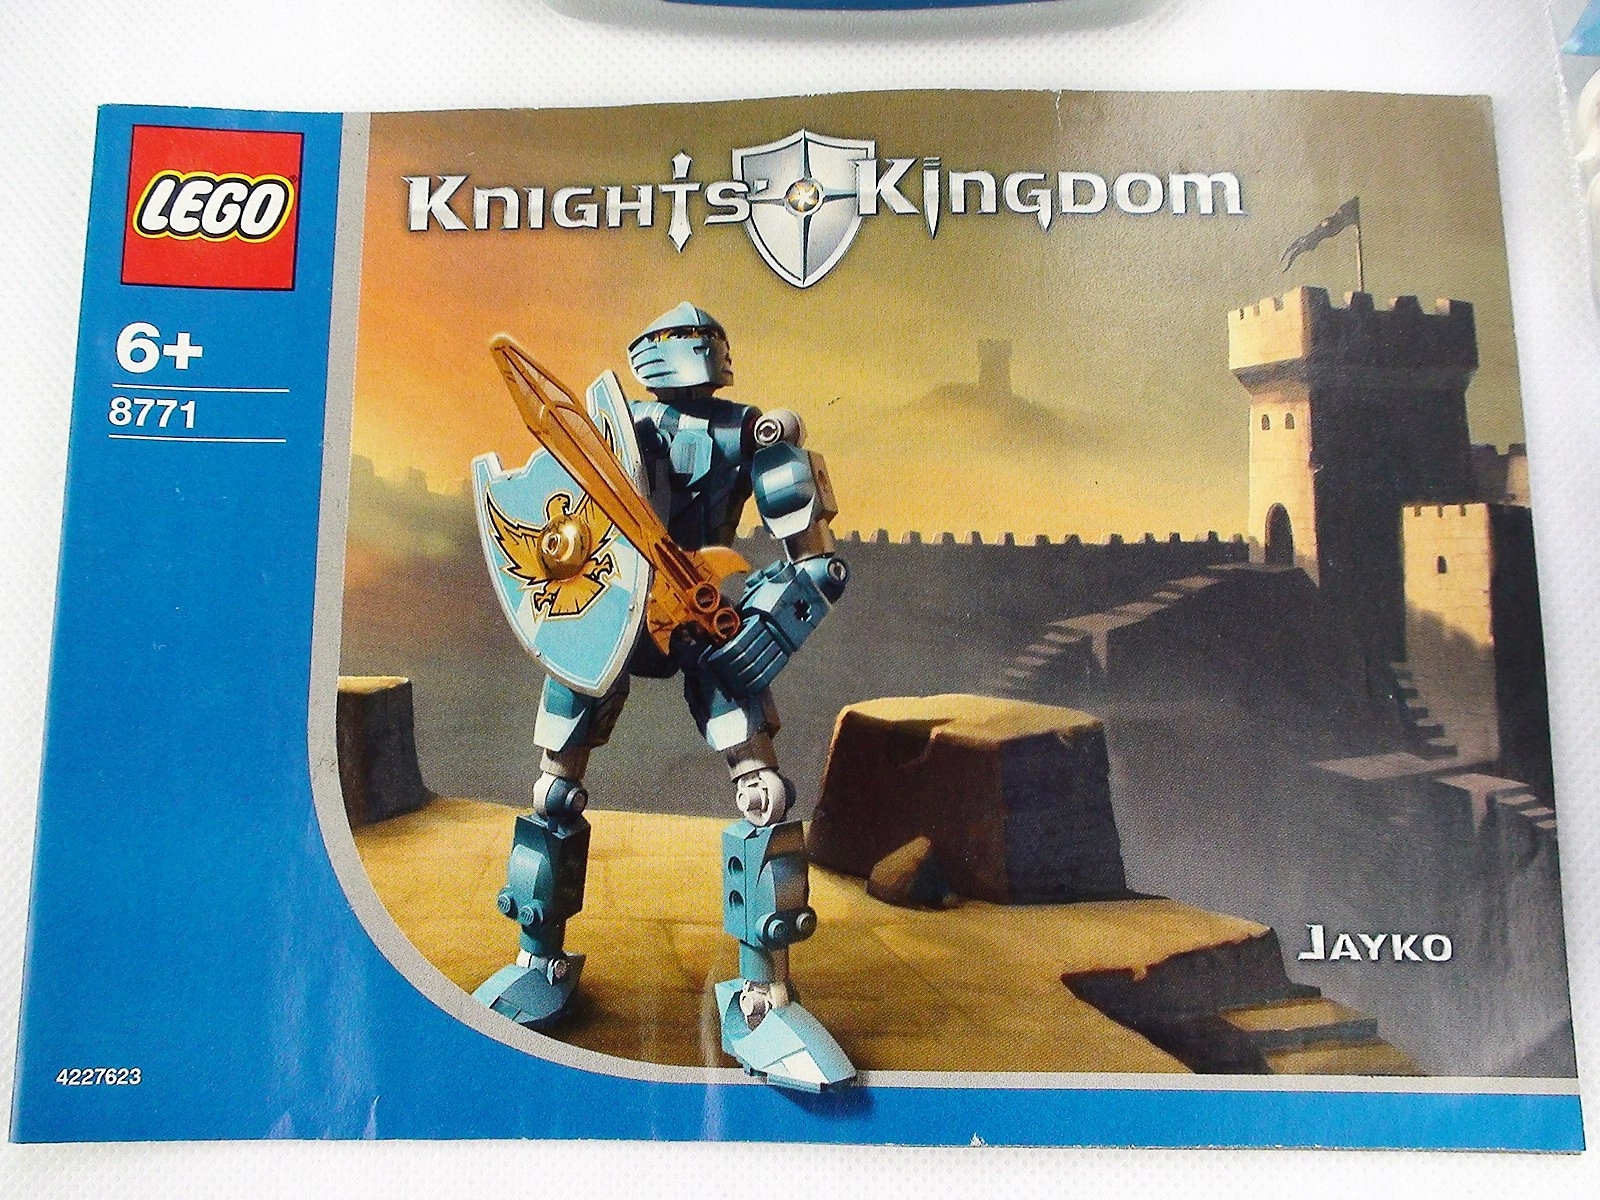 Lego Knight's Kingdom 8771